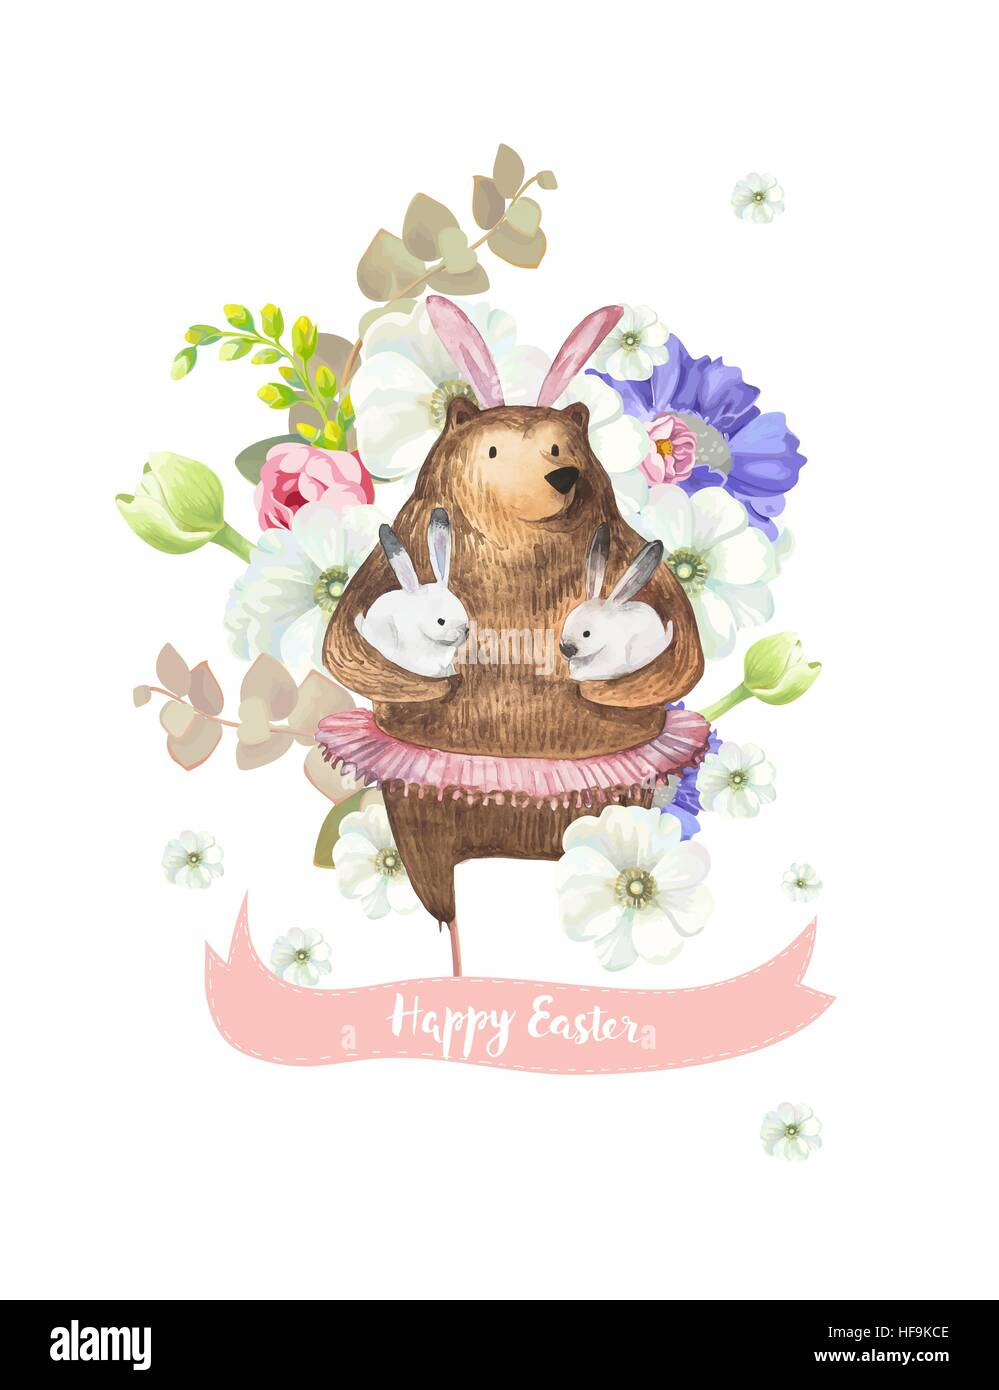 Happy easter greeting card with bunch of beautiful spring flowers on happy easter greeting card with bunch of beautiful spring flowers on background and funny bear in kristyandbryce Choice Image